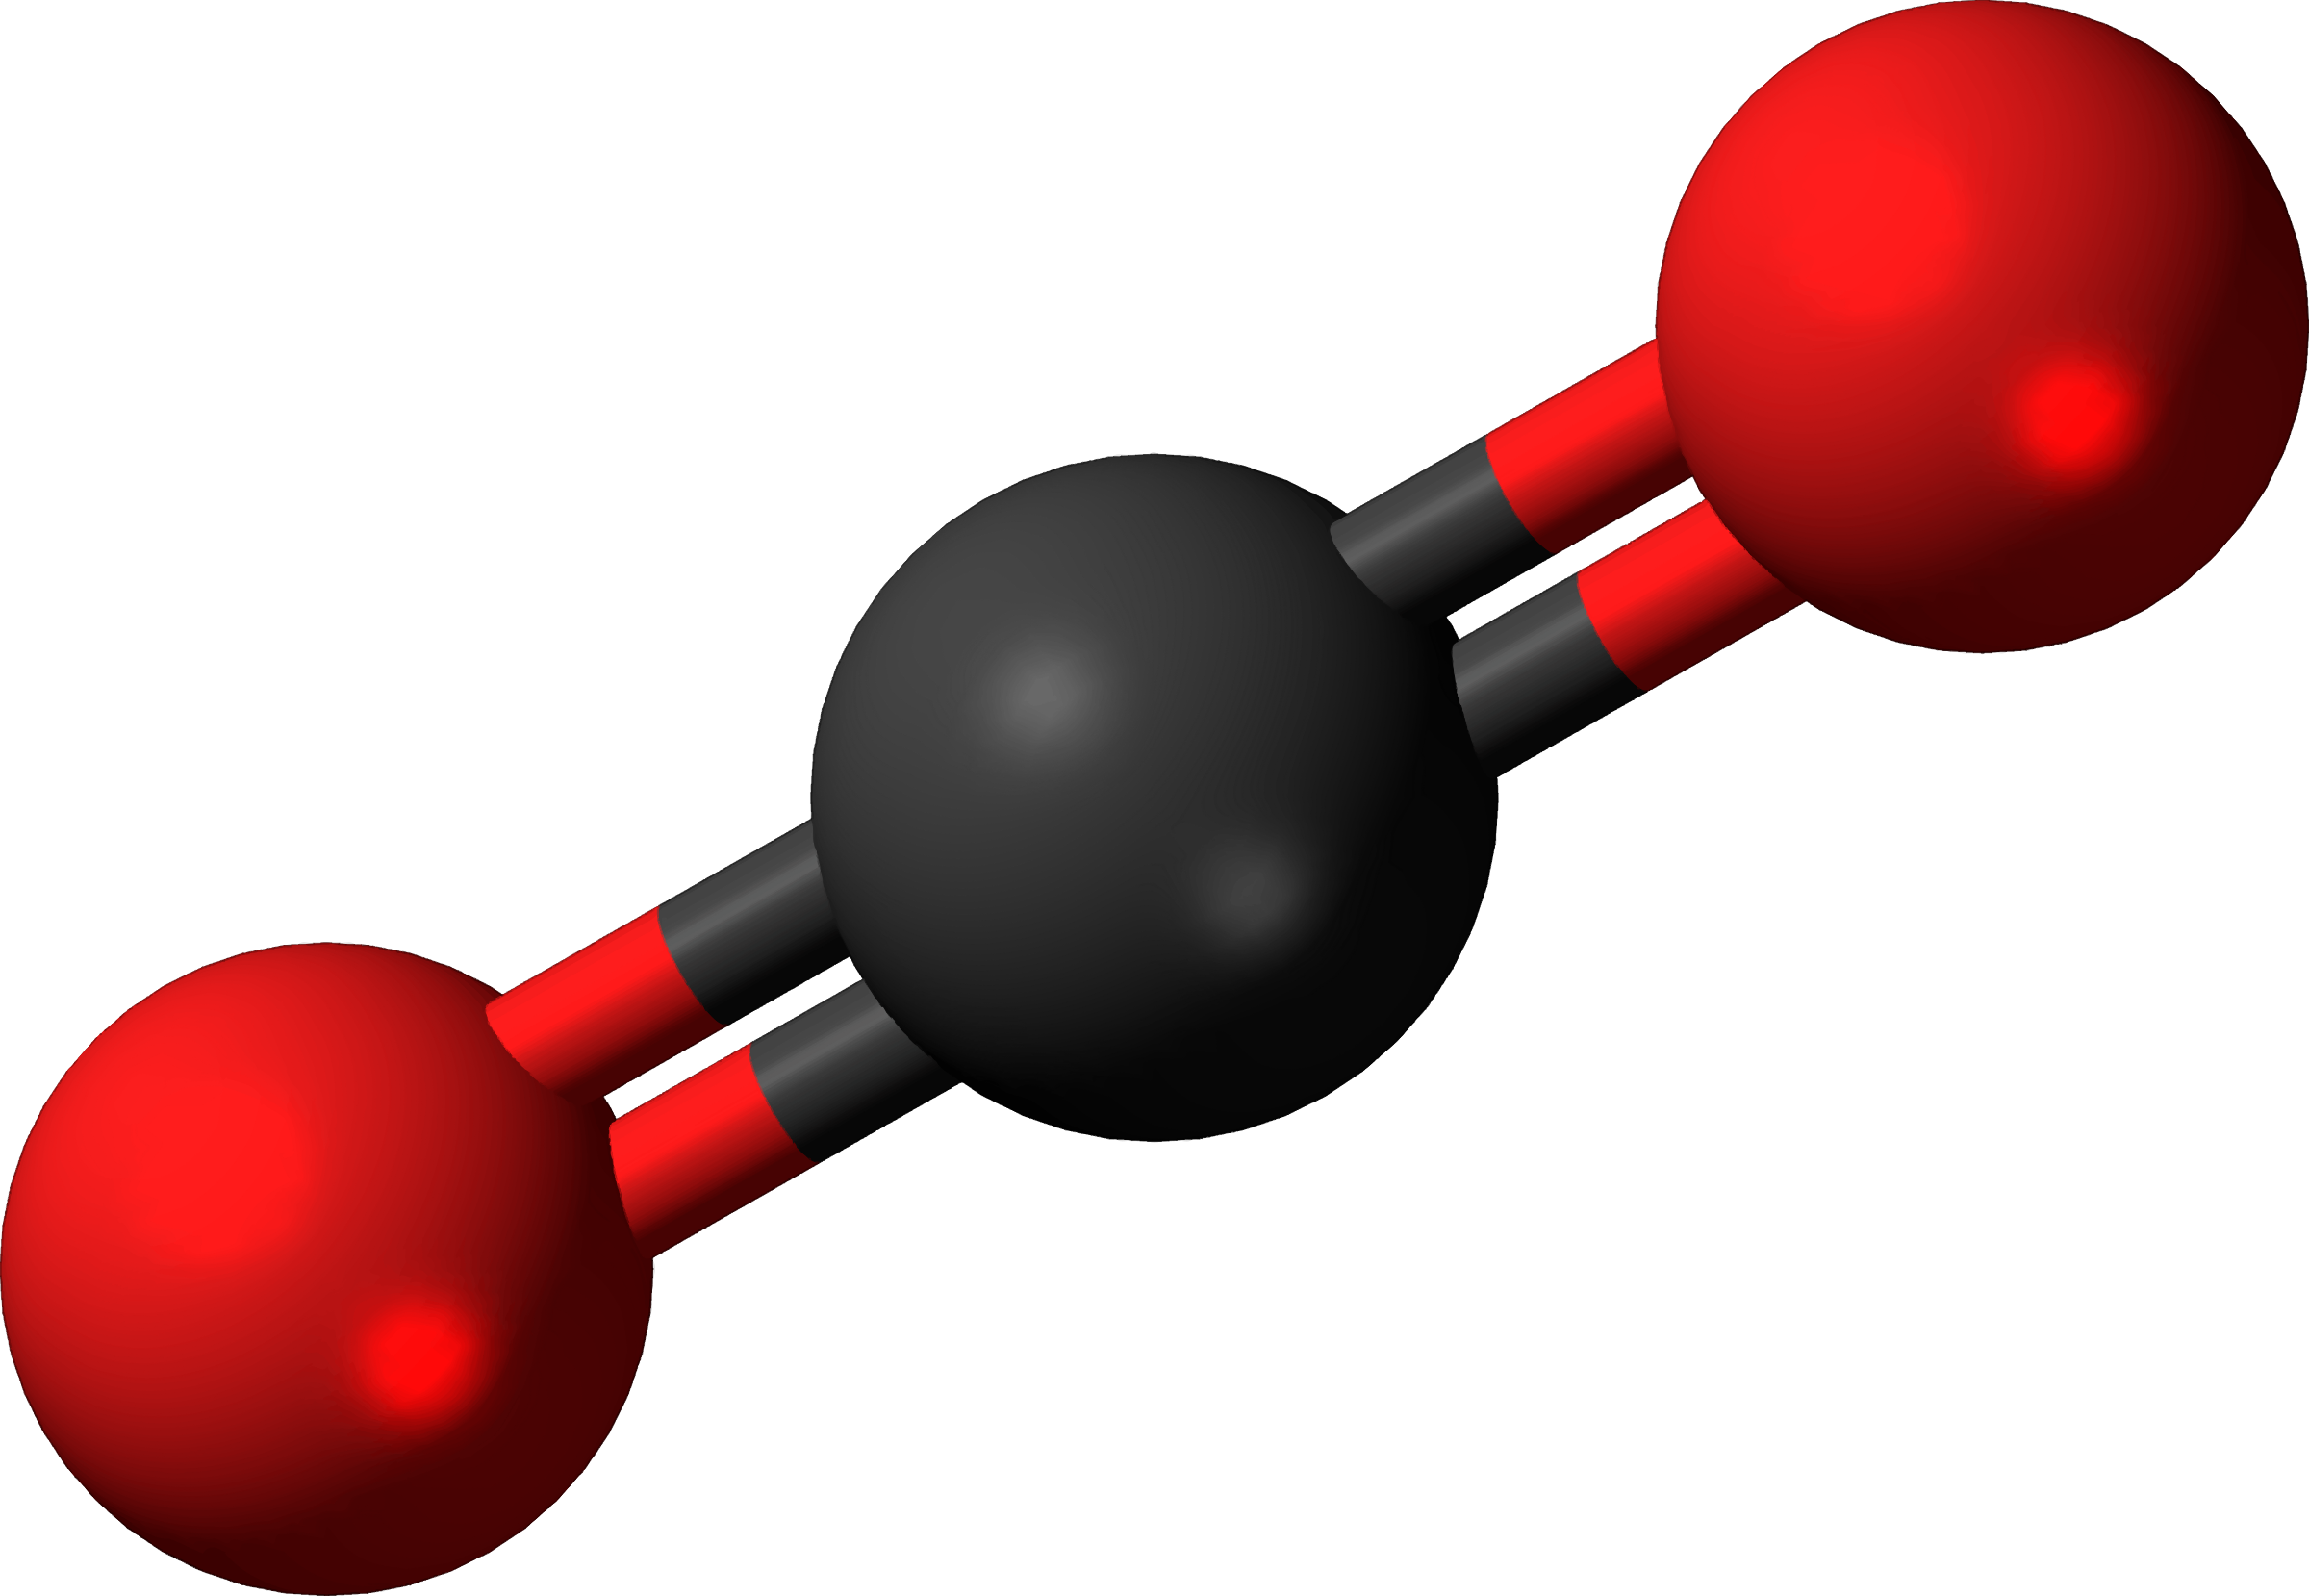 Famous (and infamous) molecules 4 - carbon dioxide by Firkin